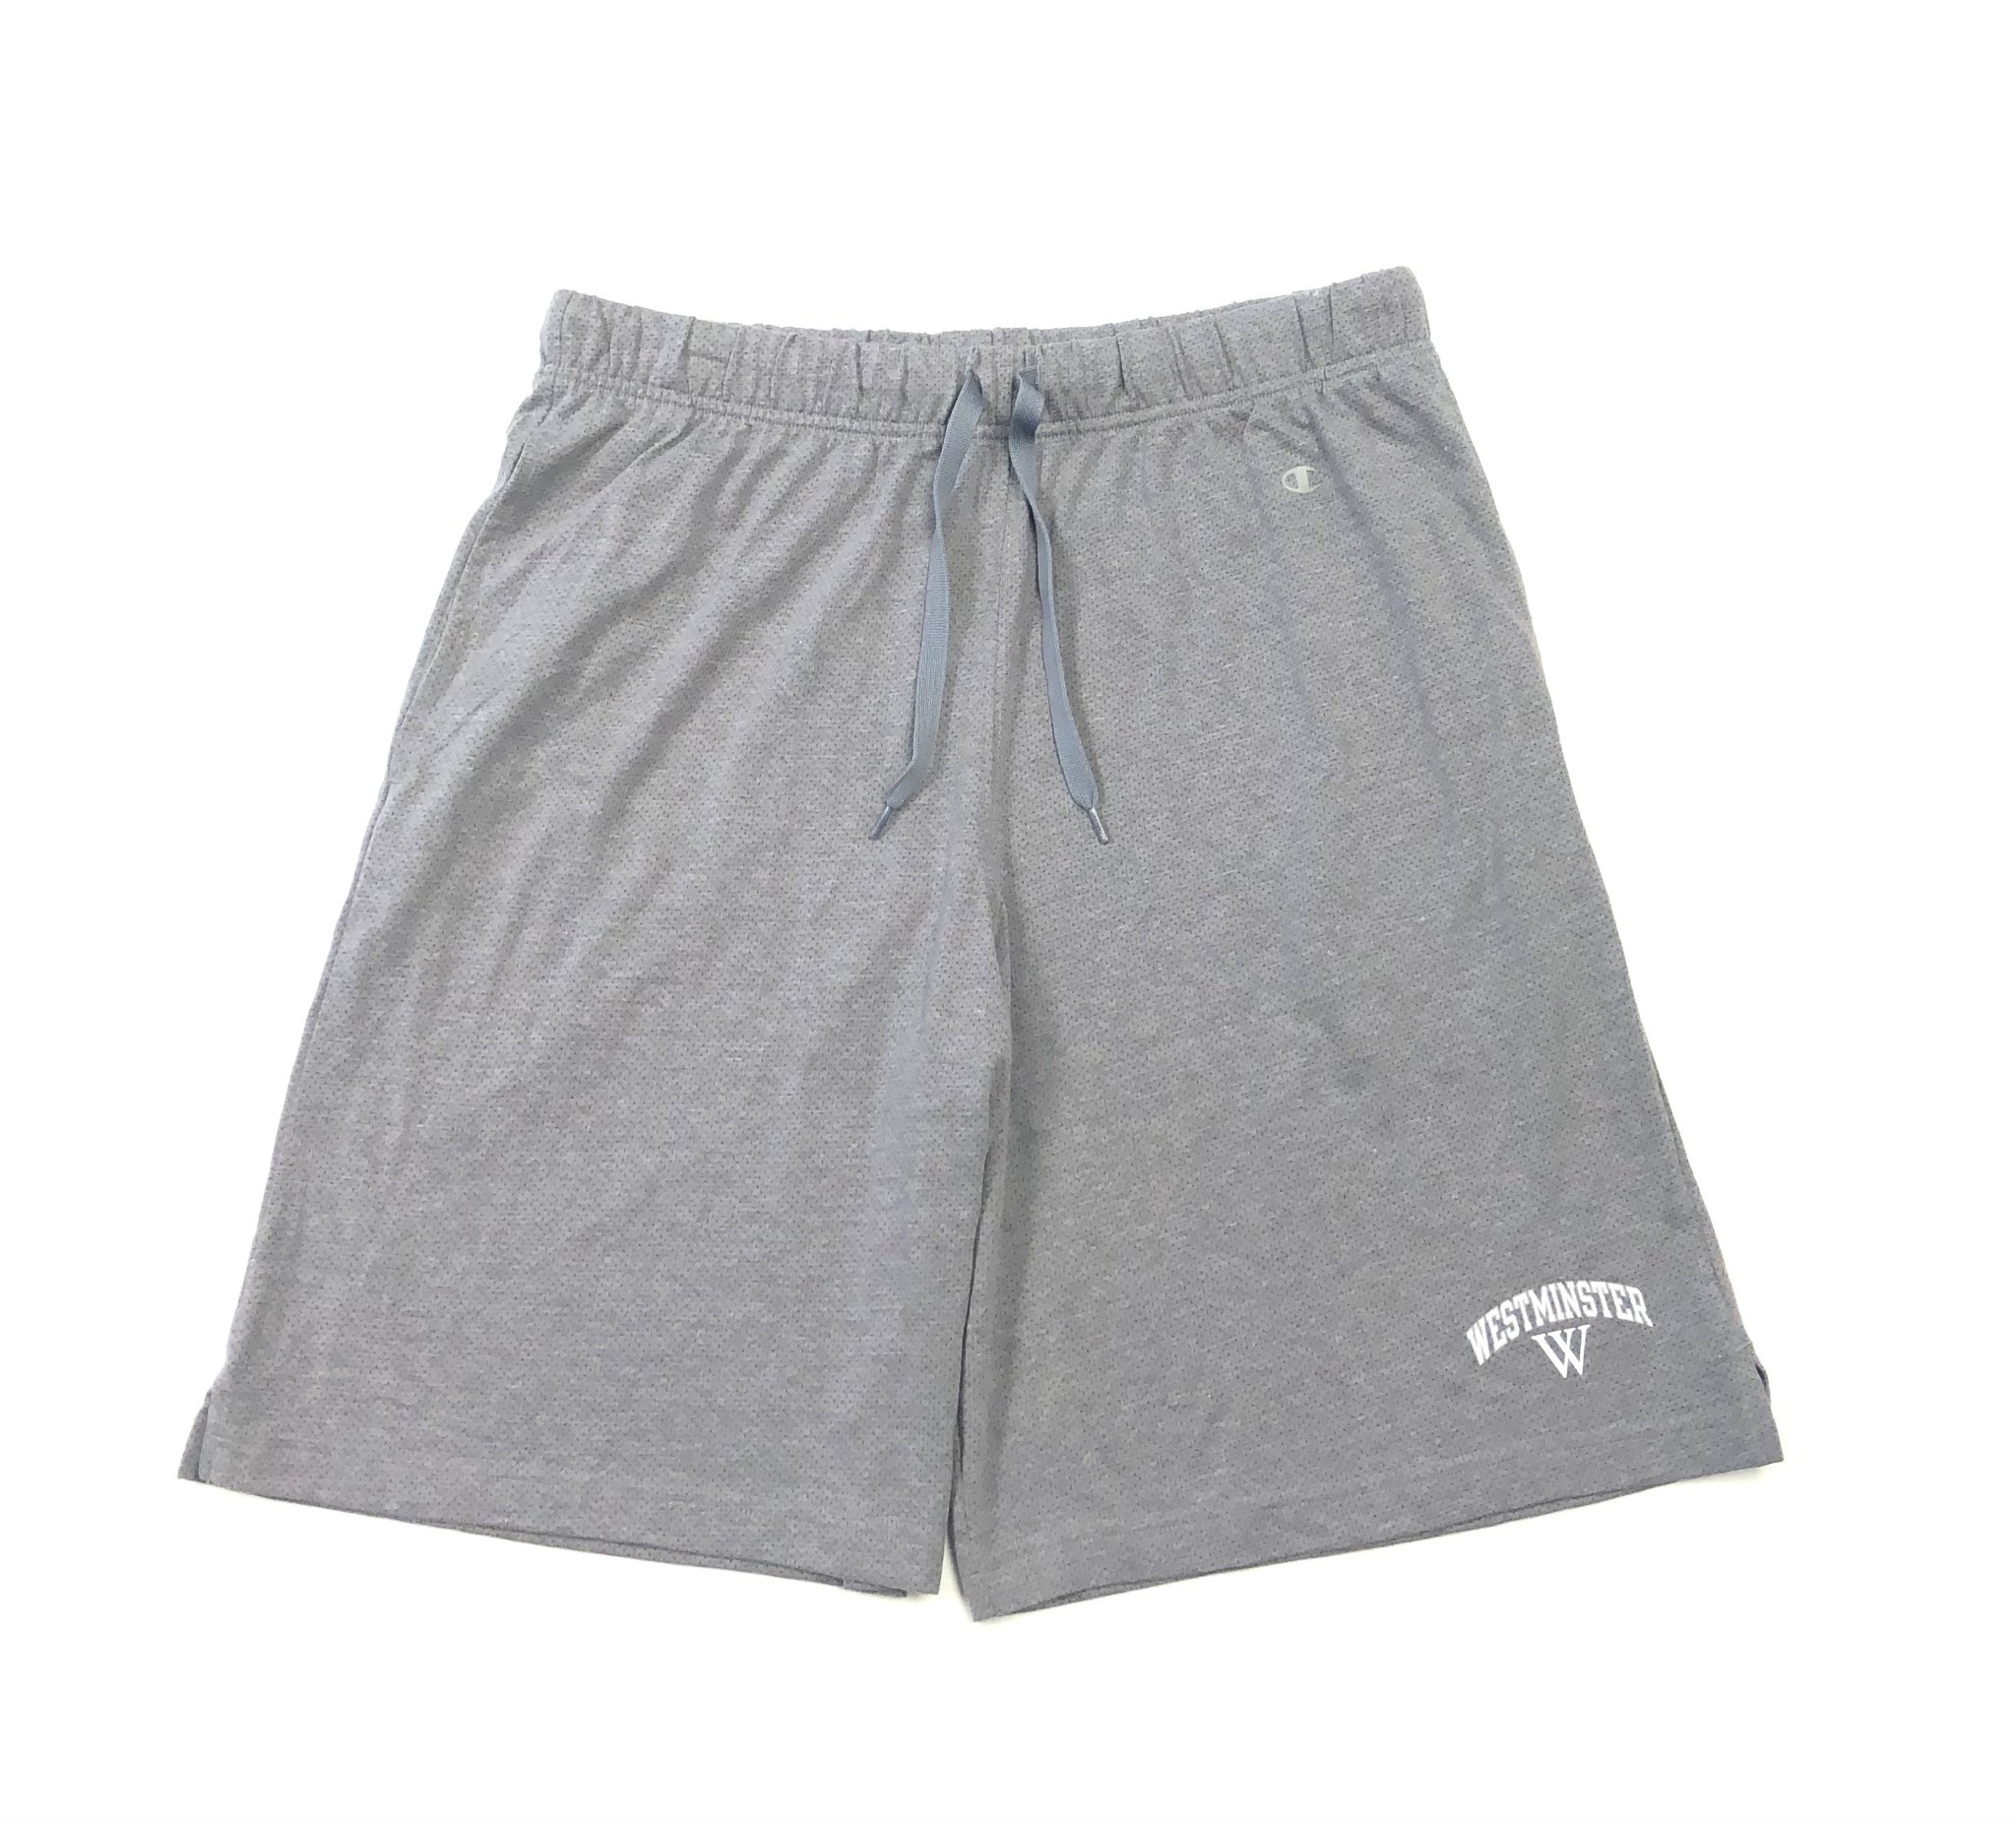 Champion Shorts: Champion Light Gray Knit w/White Westminster and White W